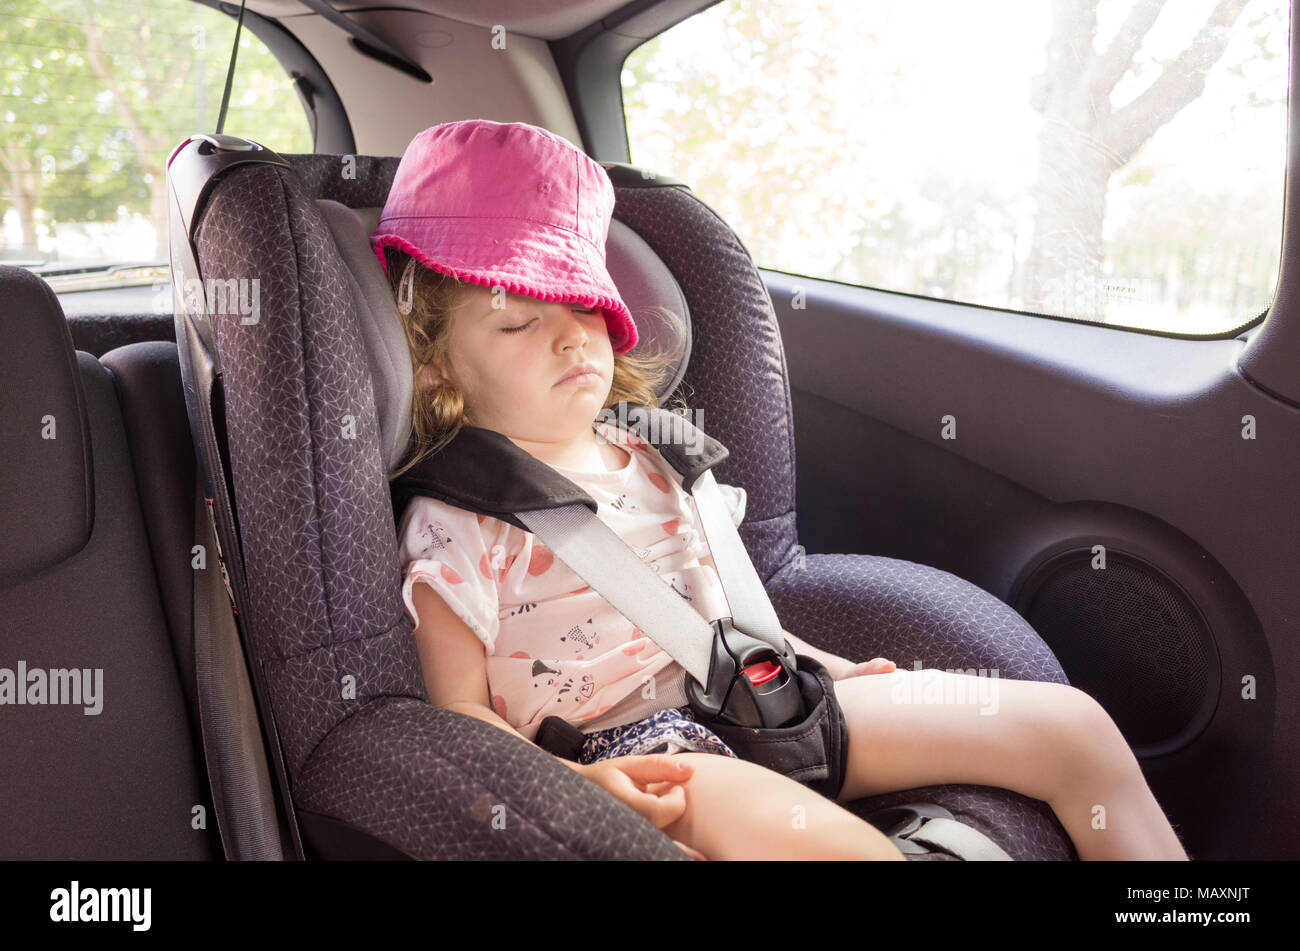 Three Year Old Child Asleep In The Car Seat Uk Stock Photo